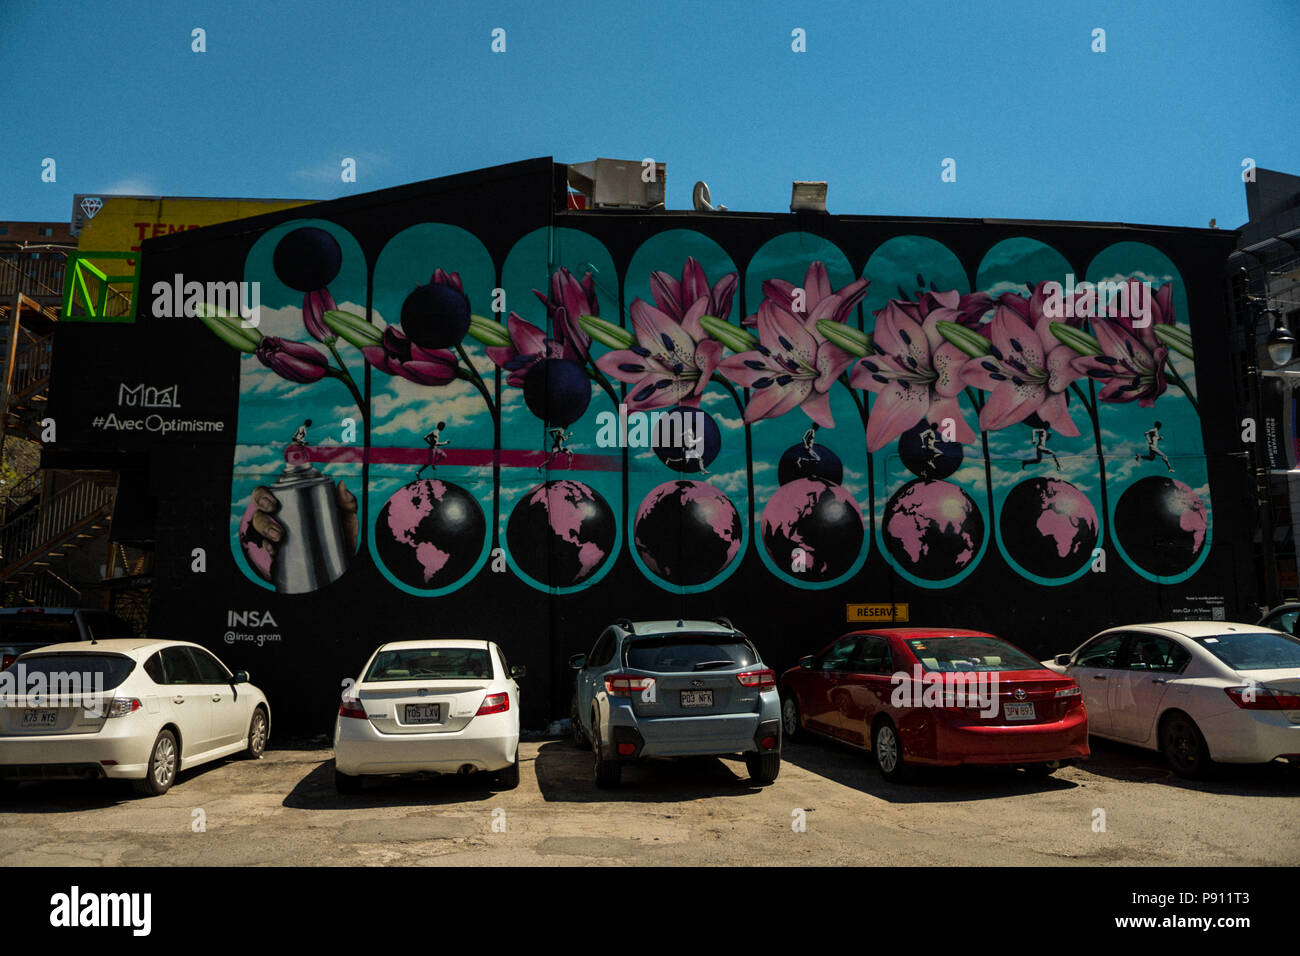 MONTREAL, CANADA APRIL 2018 - Creative graffiti street art murals line the streets and back alleys of Montreal, the largest city in Quebec, especially - Stock Image